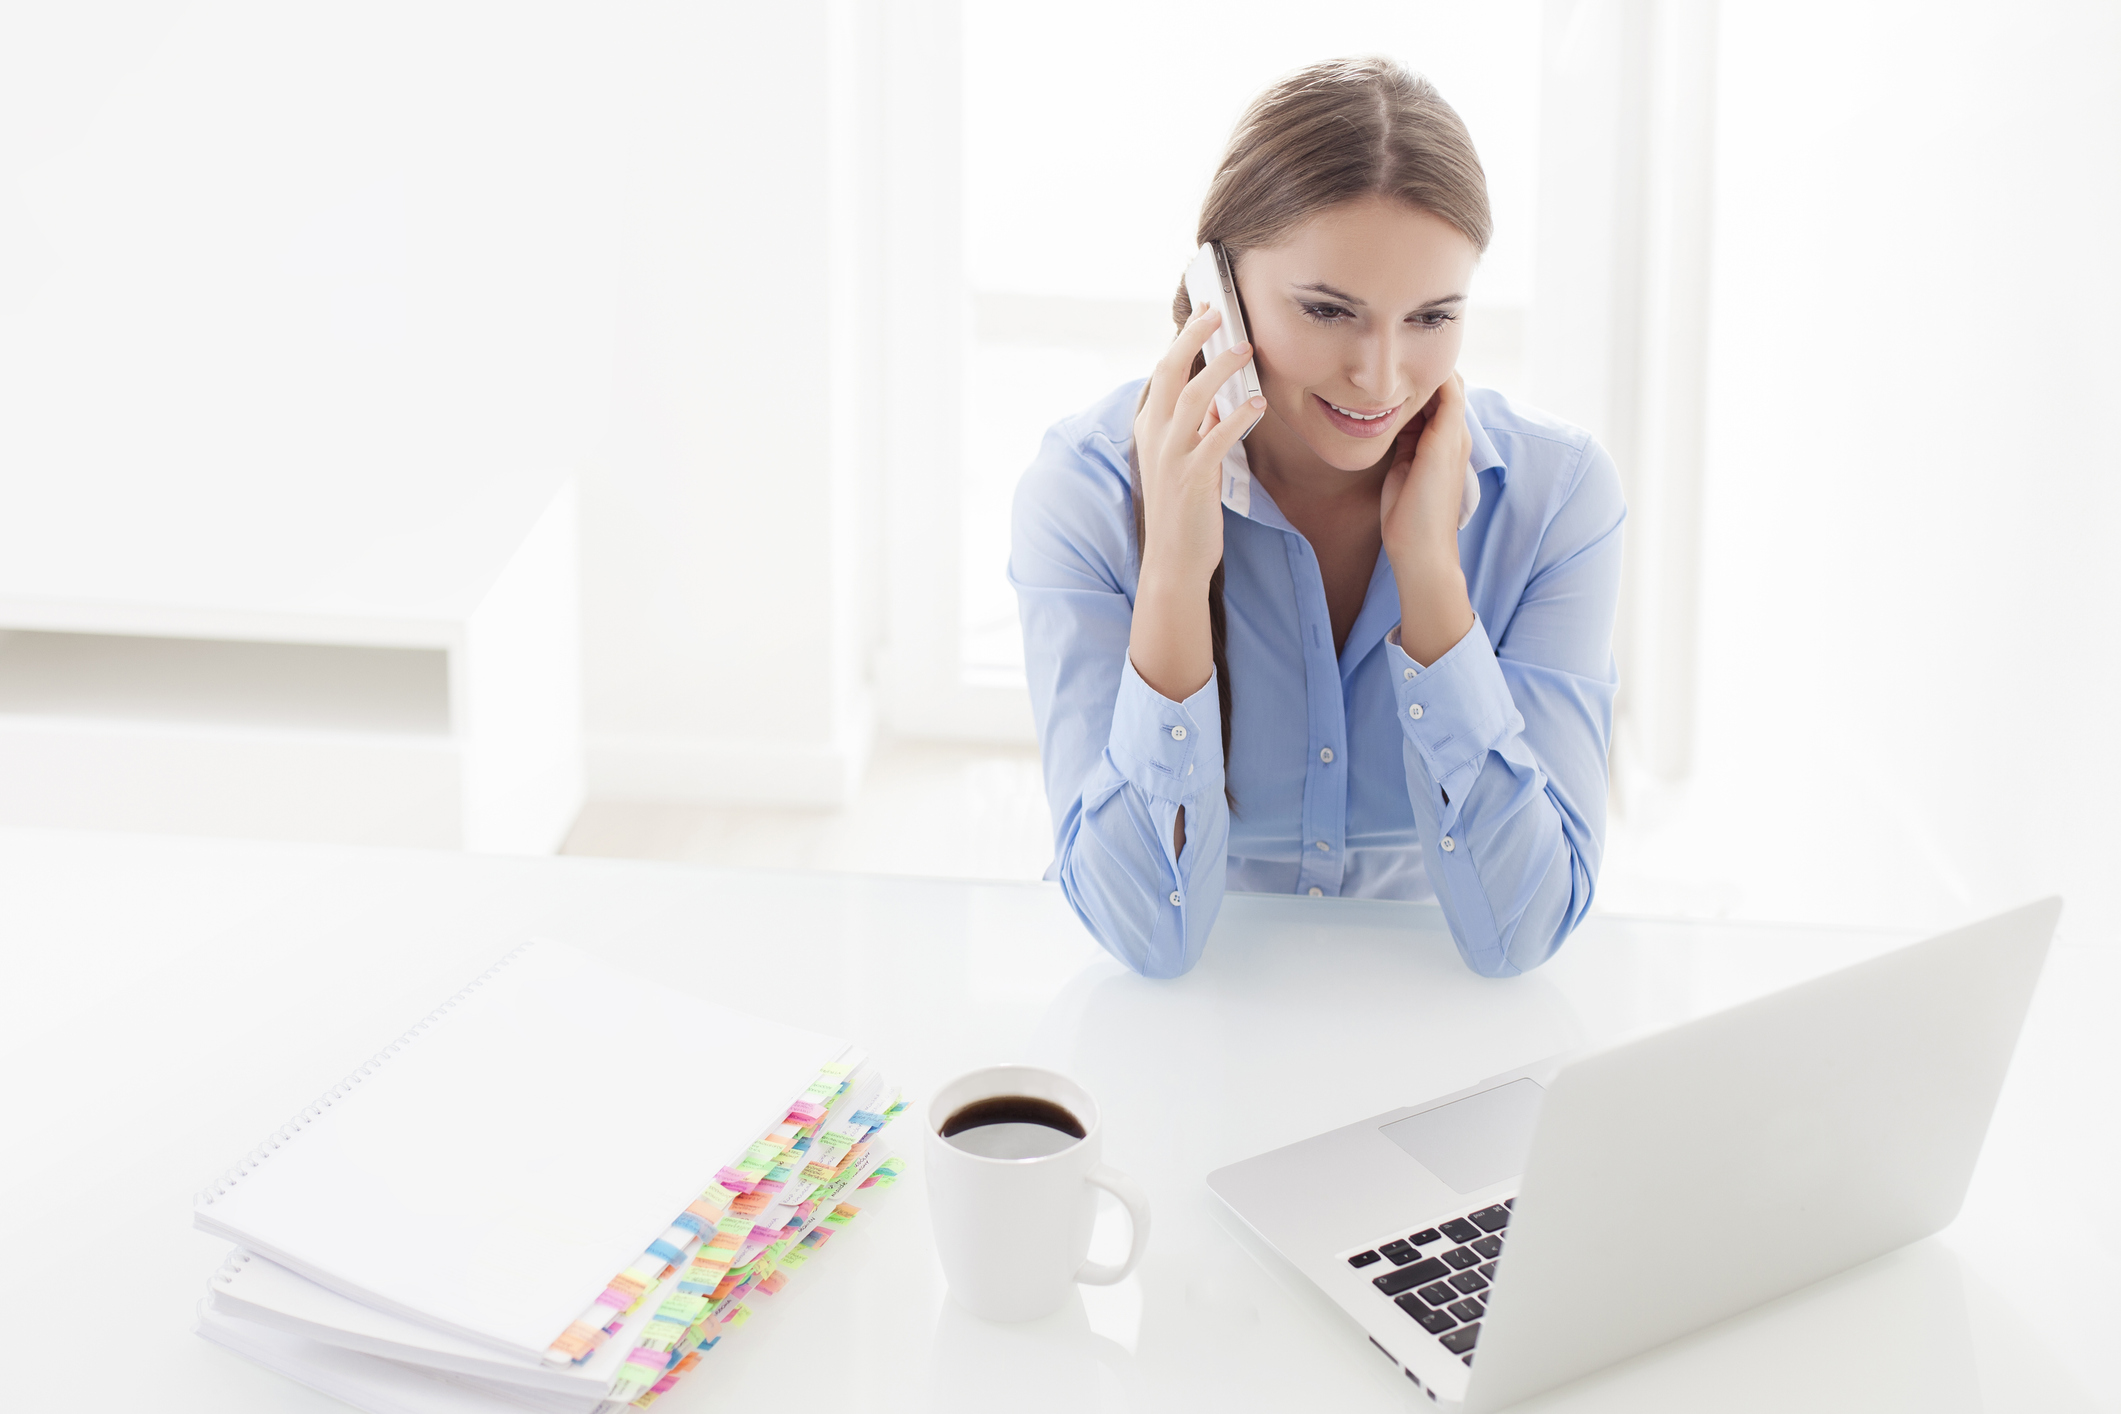 woman-talking-in-the-phone-while-in-laptop-incognito-software